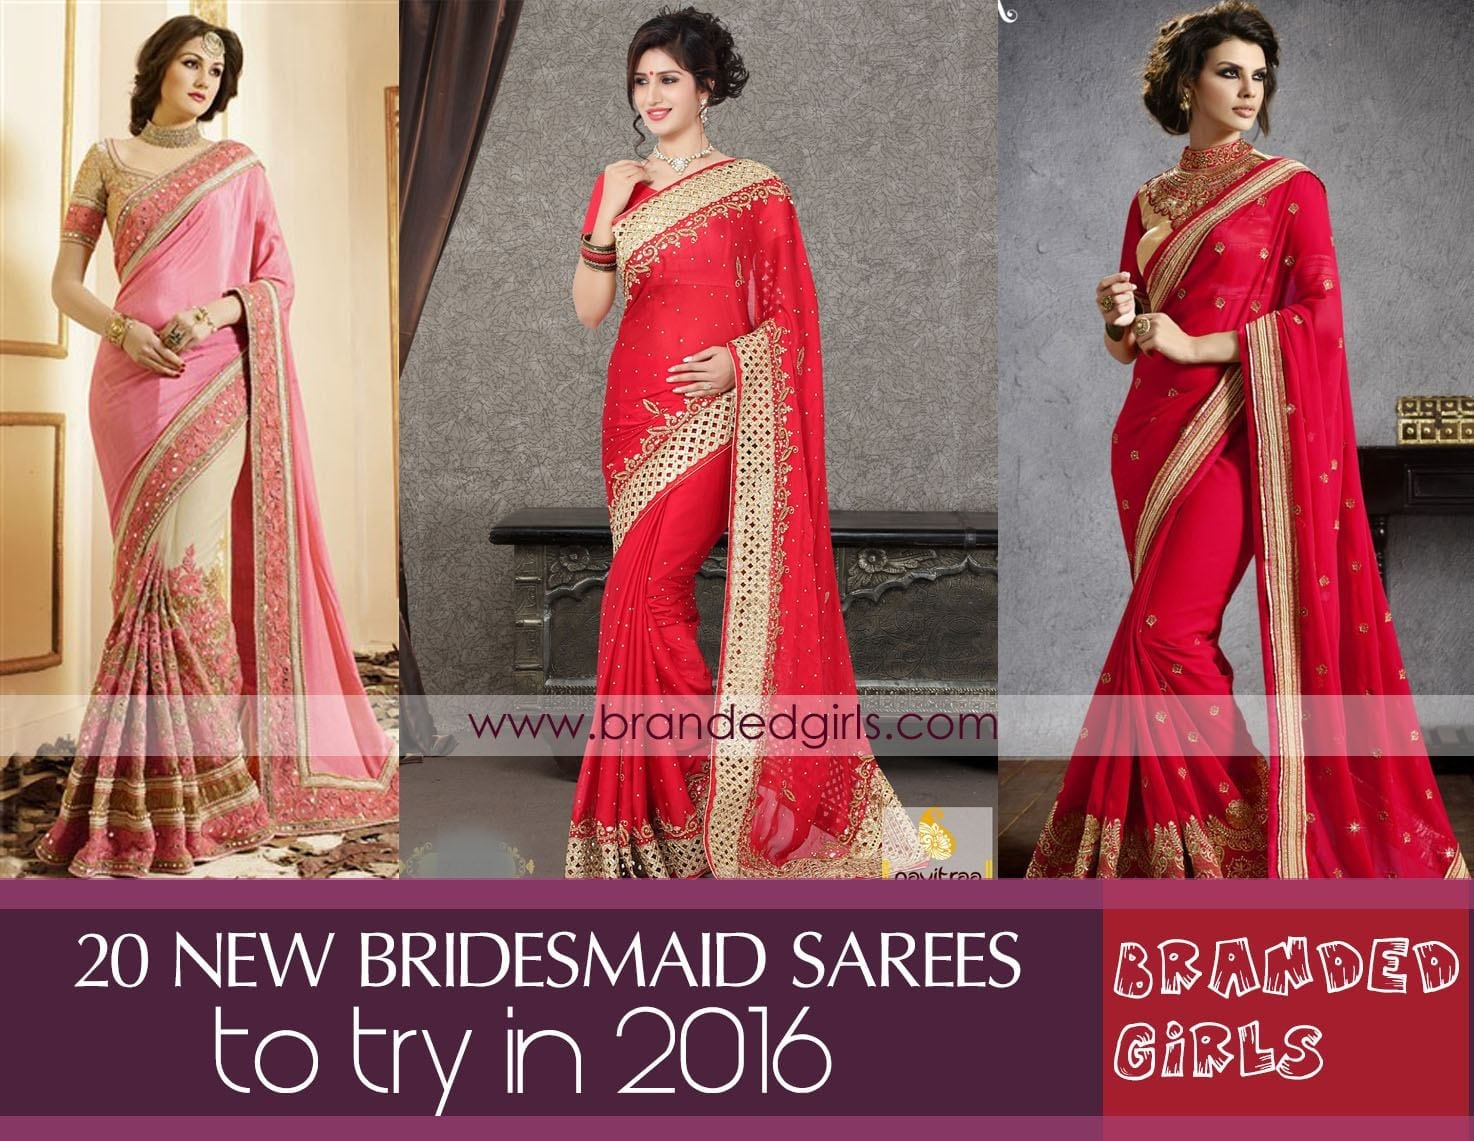 bridesmaid sarees